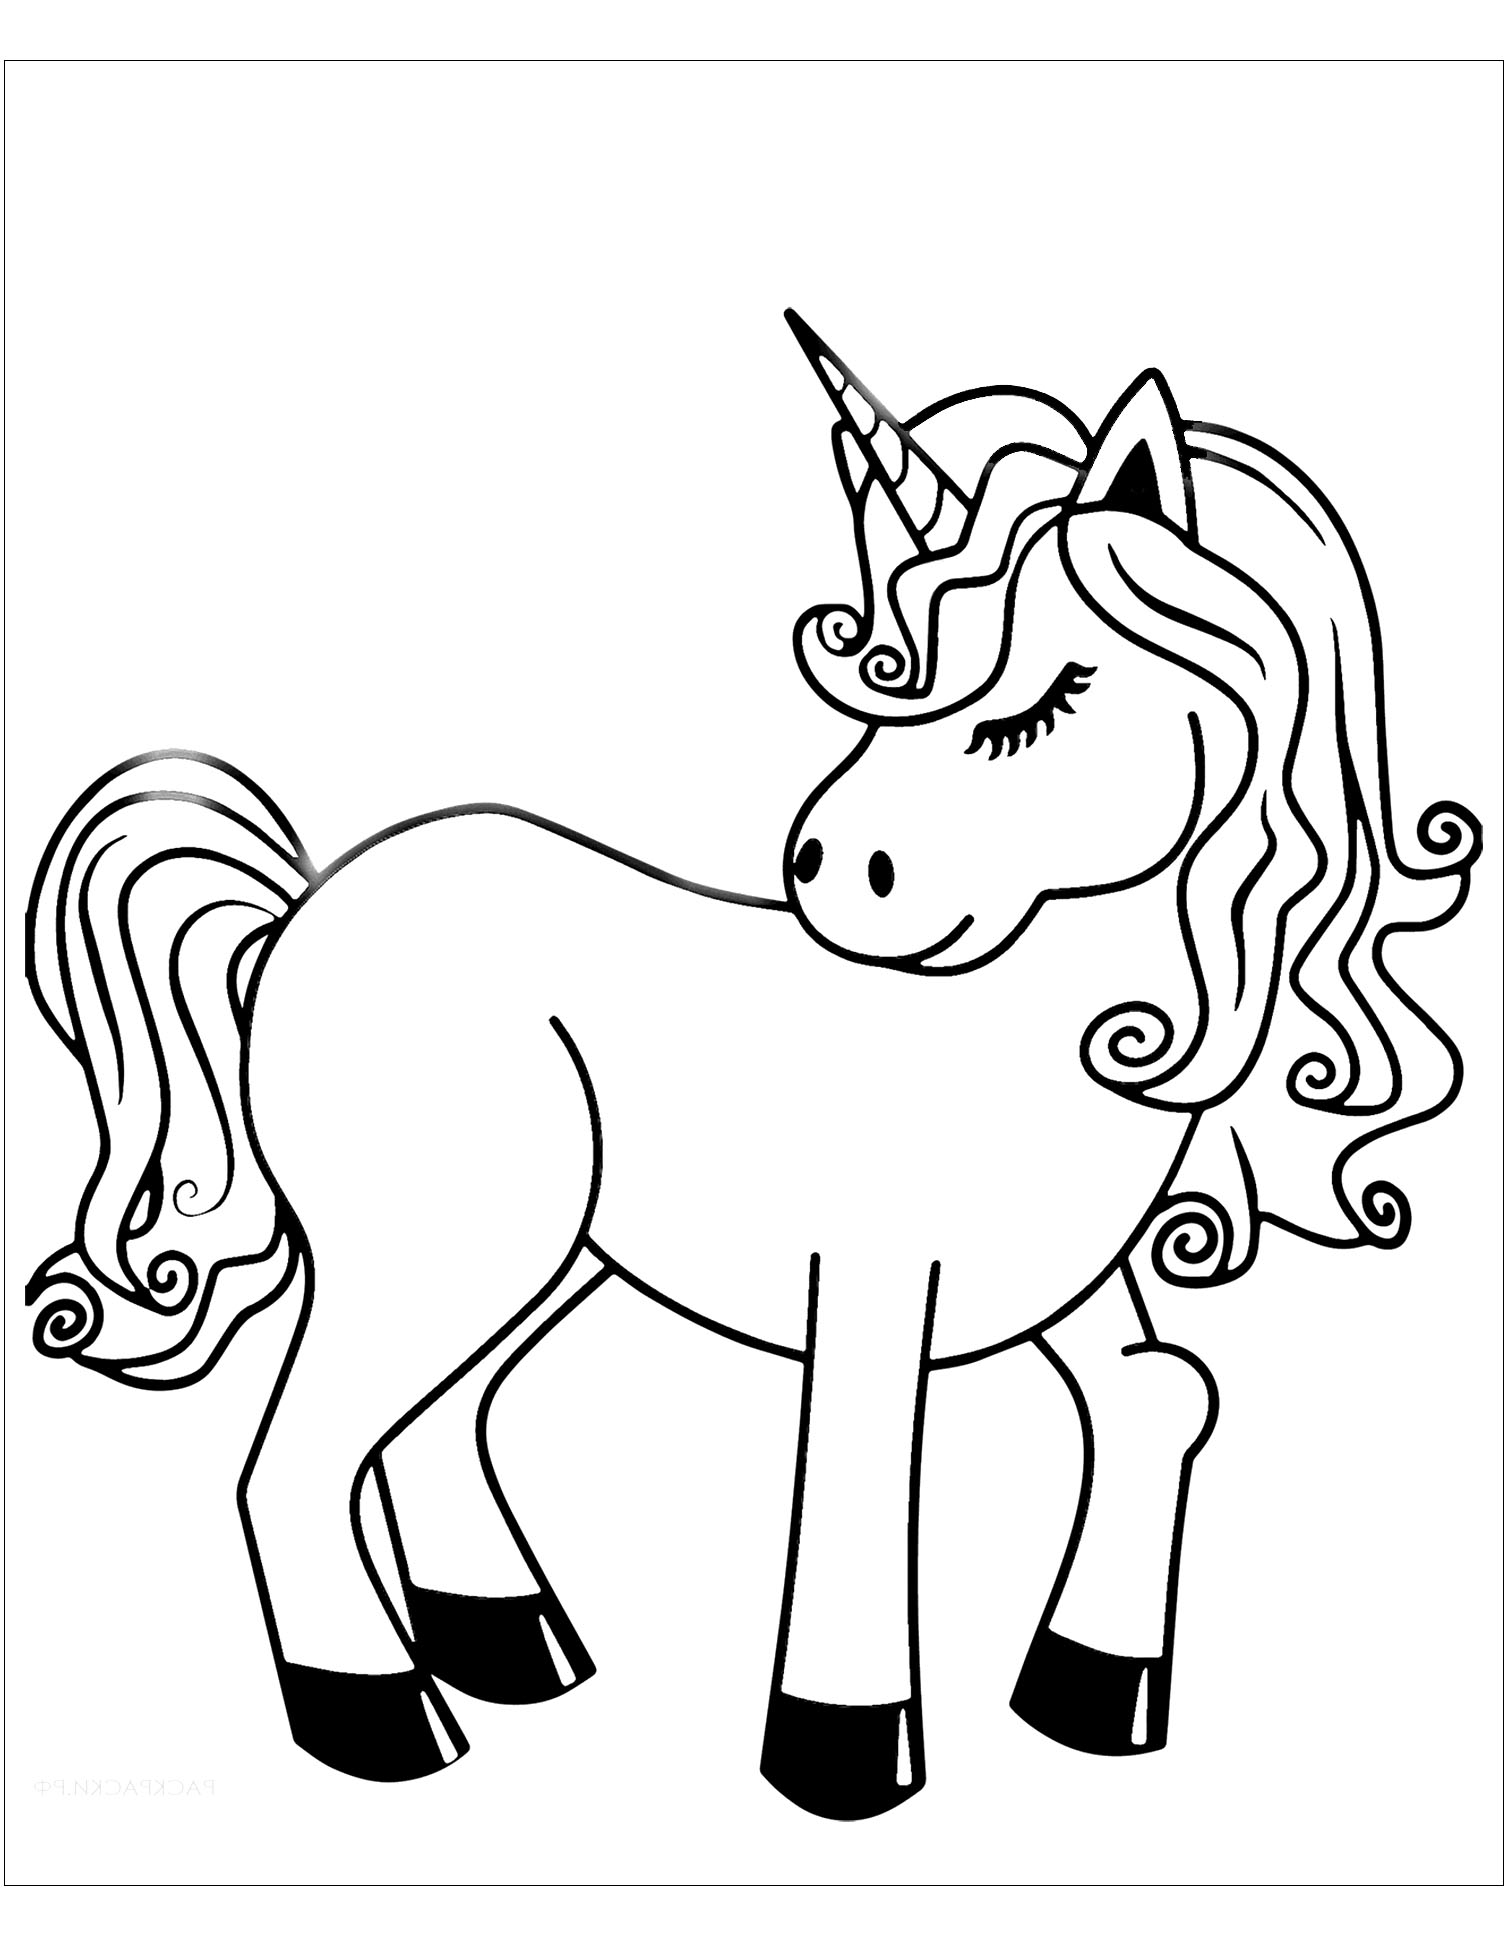 Unicorns coloring page to print and color